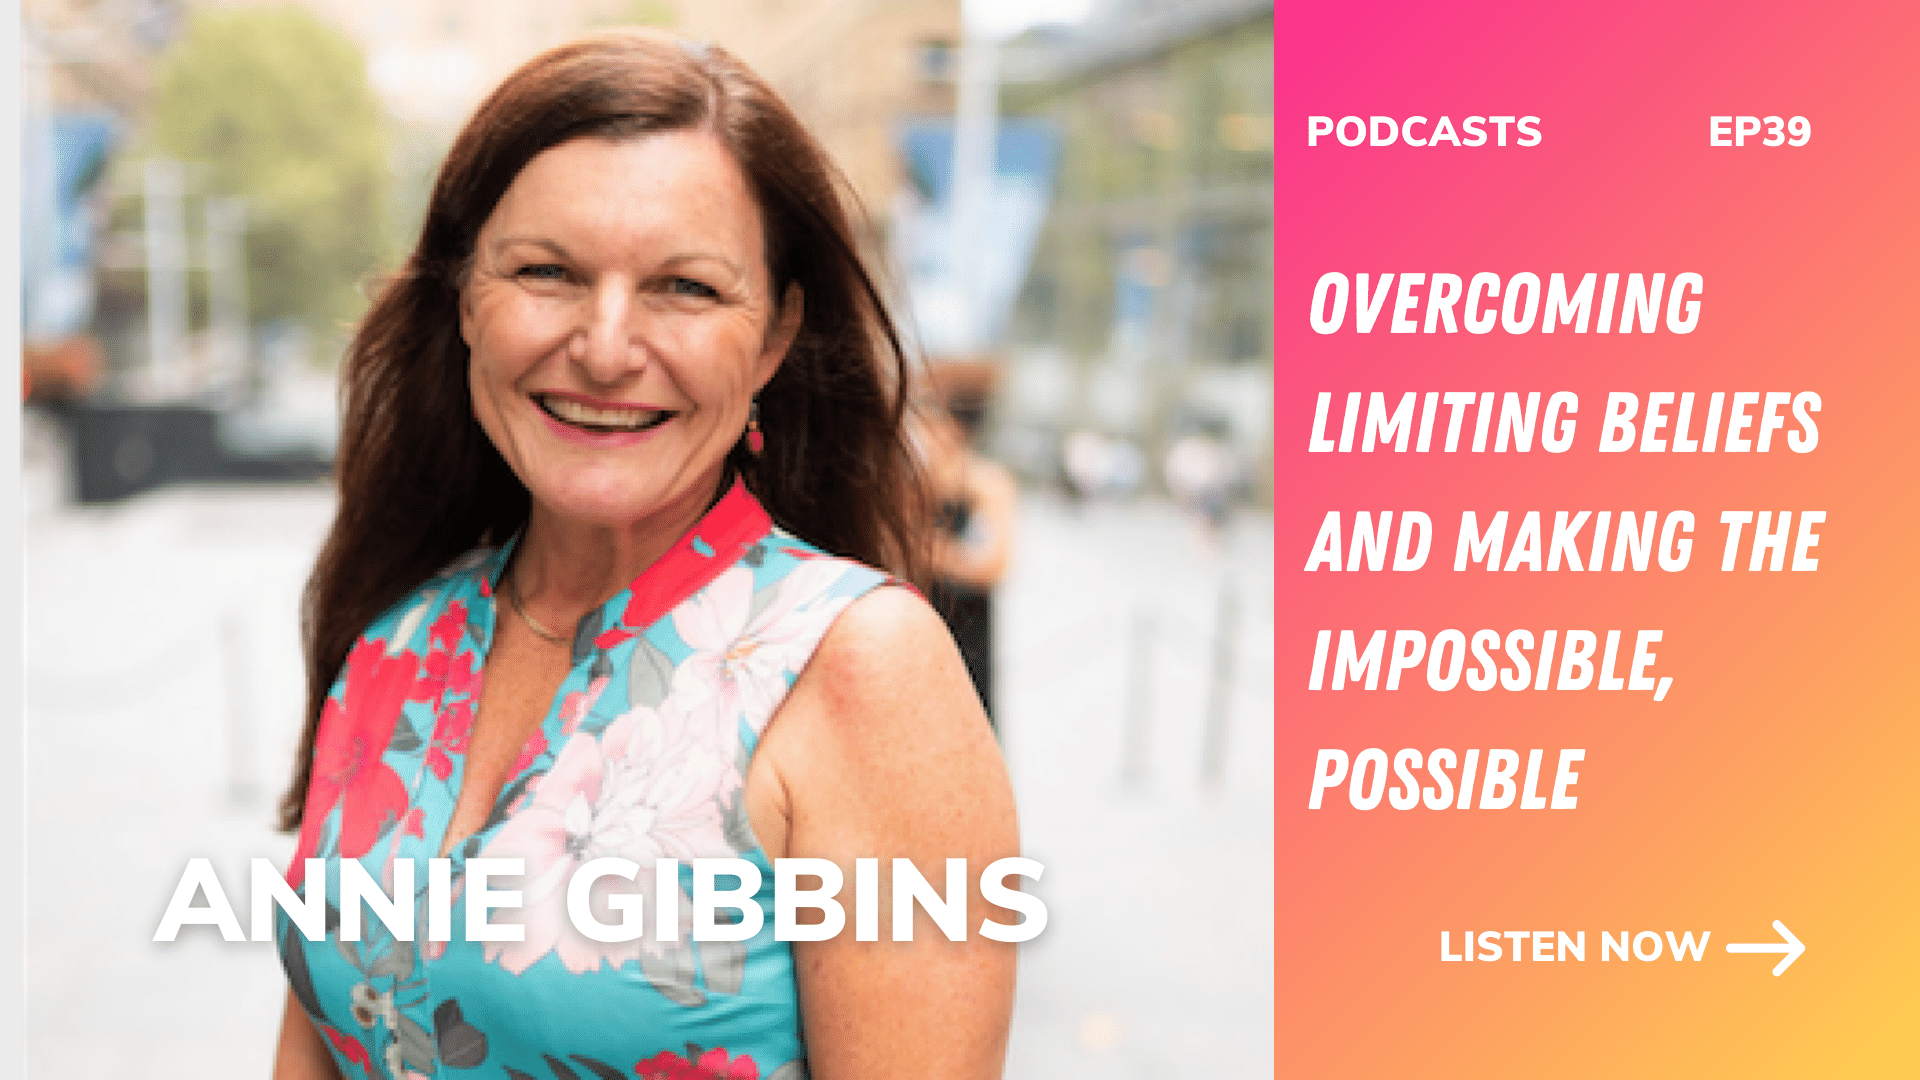 annie gibbins overcoming limiting beliefs